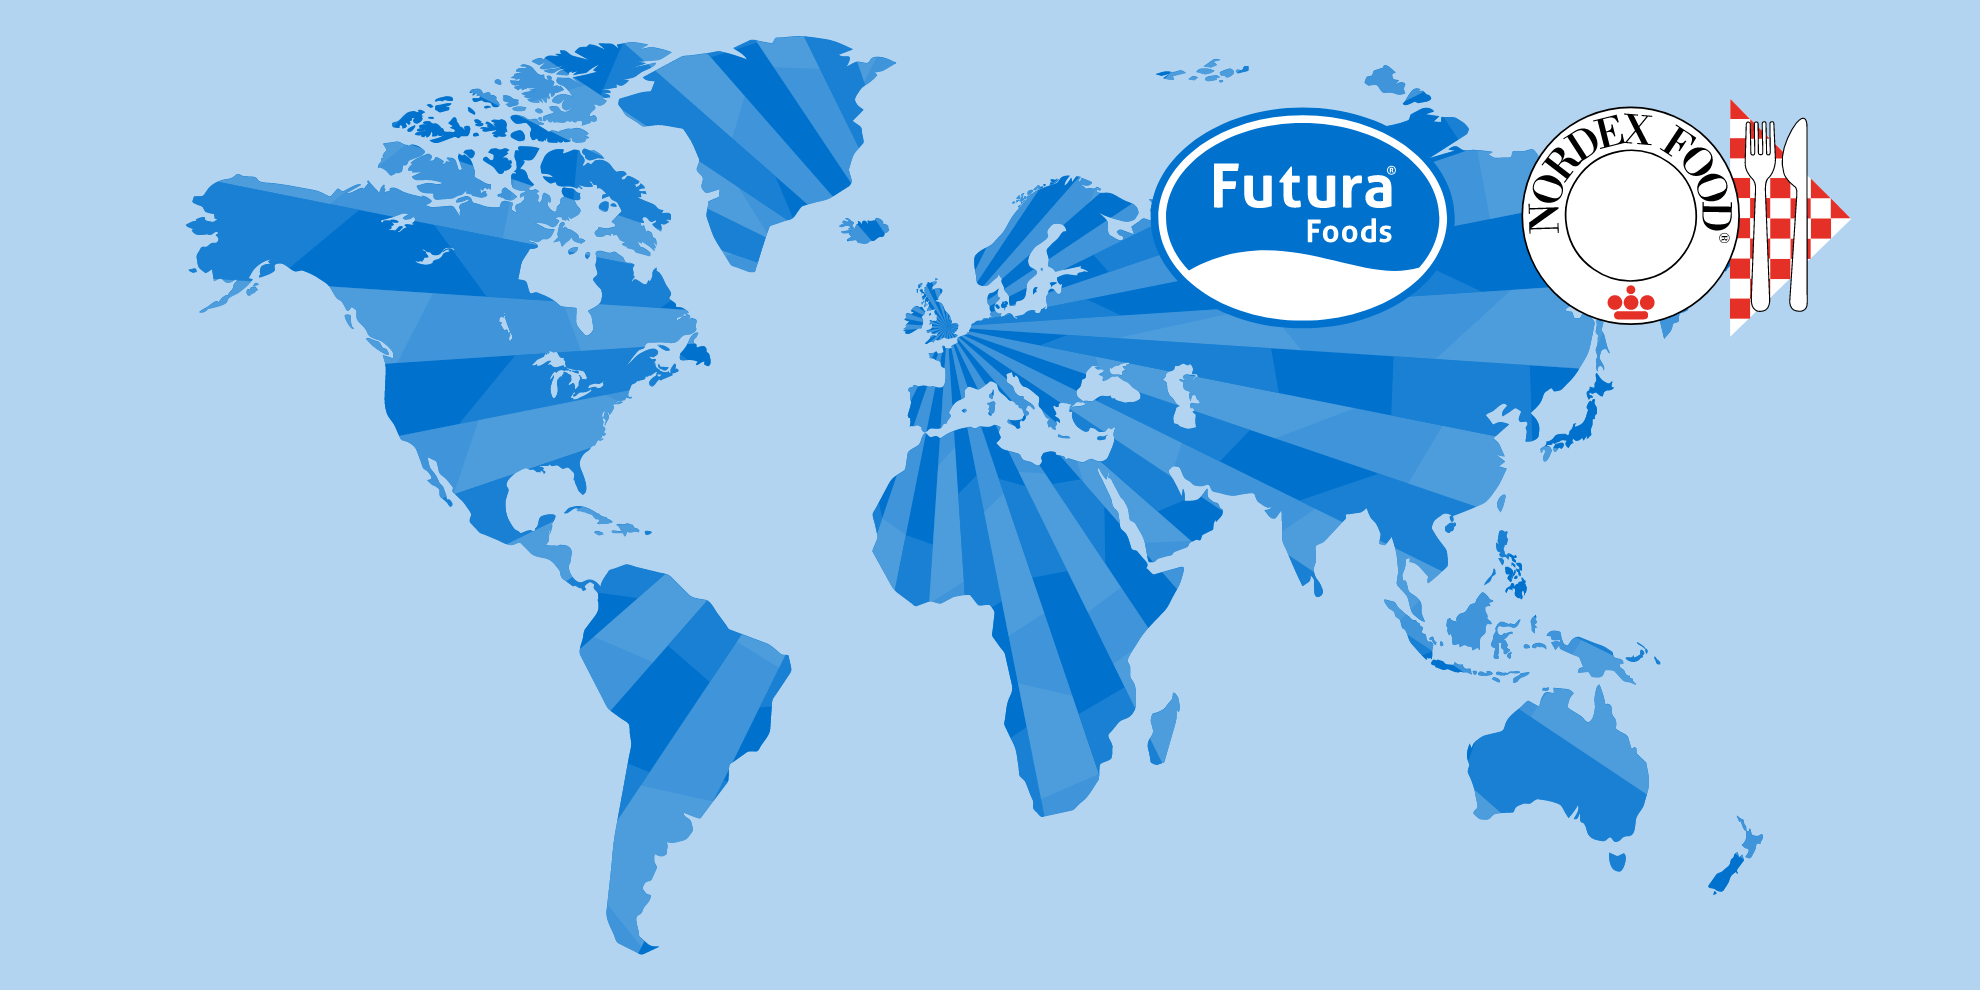 Futura Foods Global Supply Map